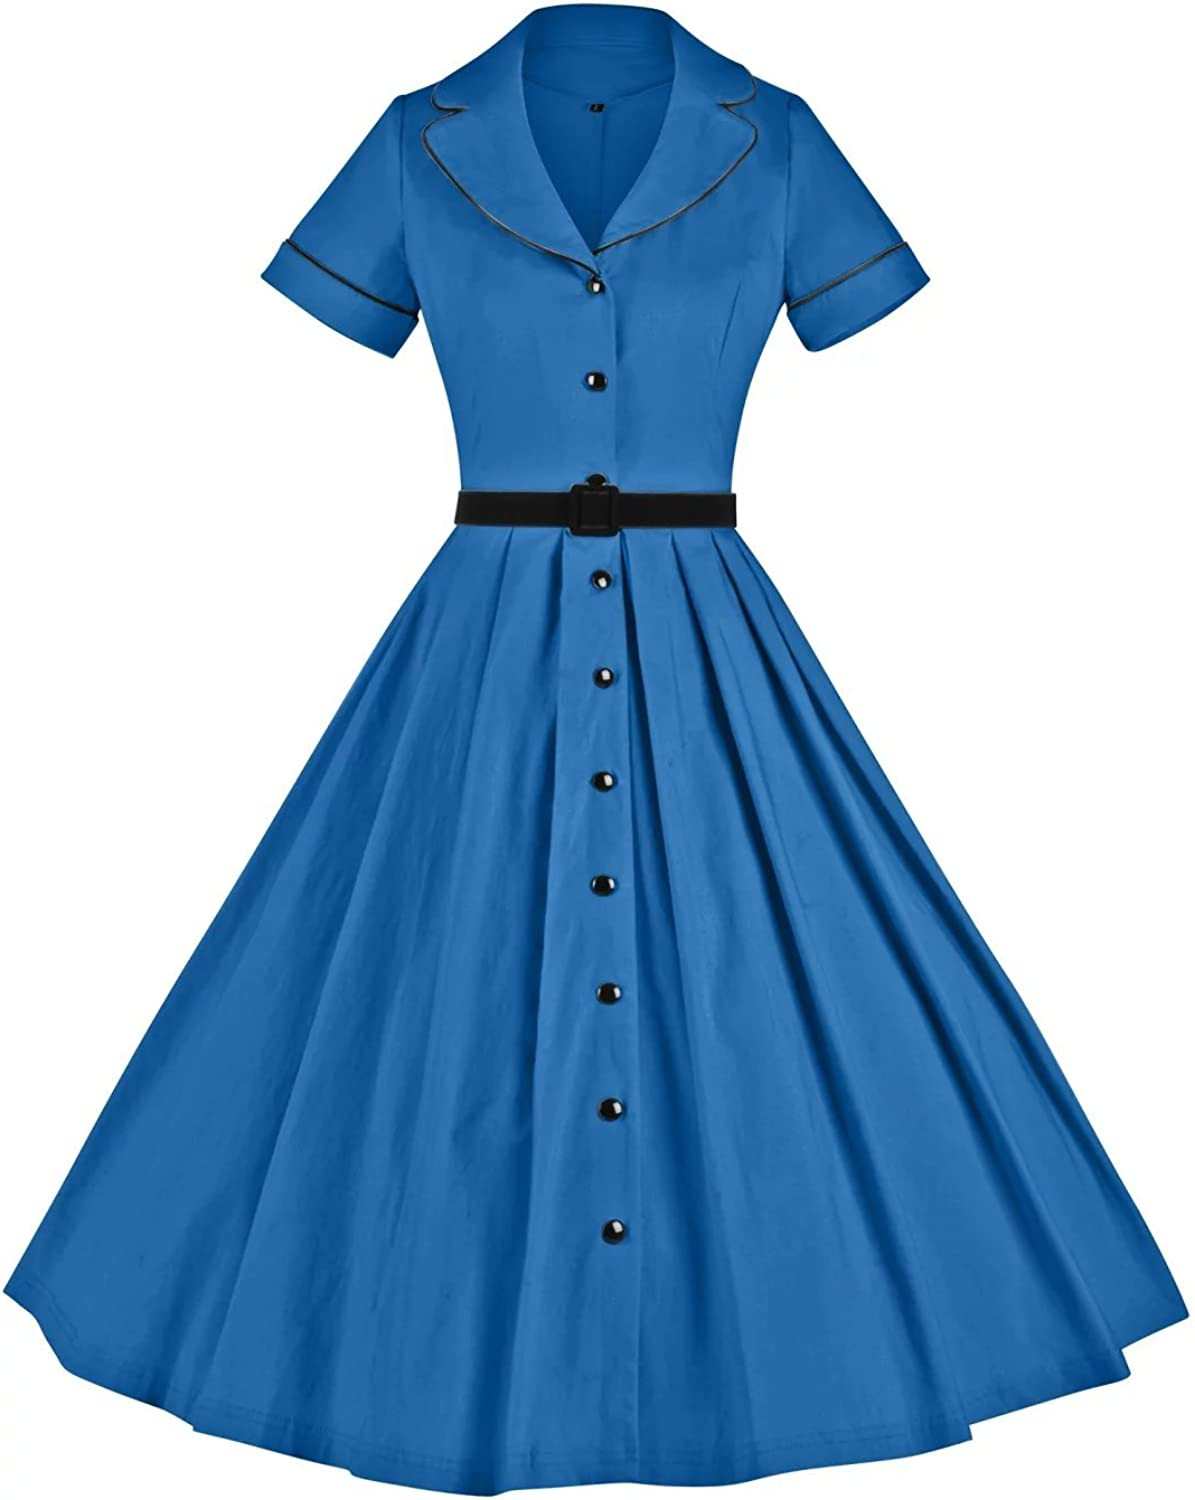 GownTown Women's 1950sVintage Classical Casual Swing Aline Dress